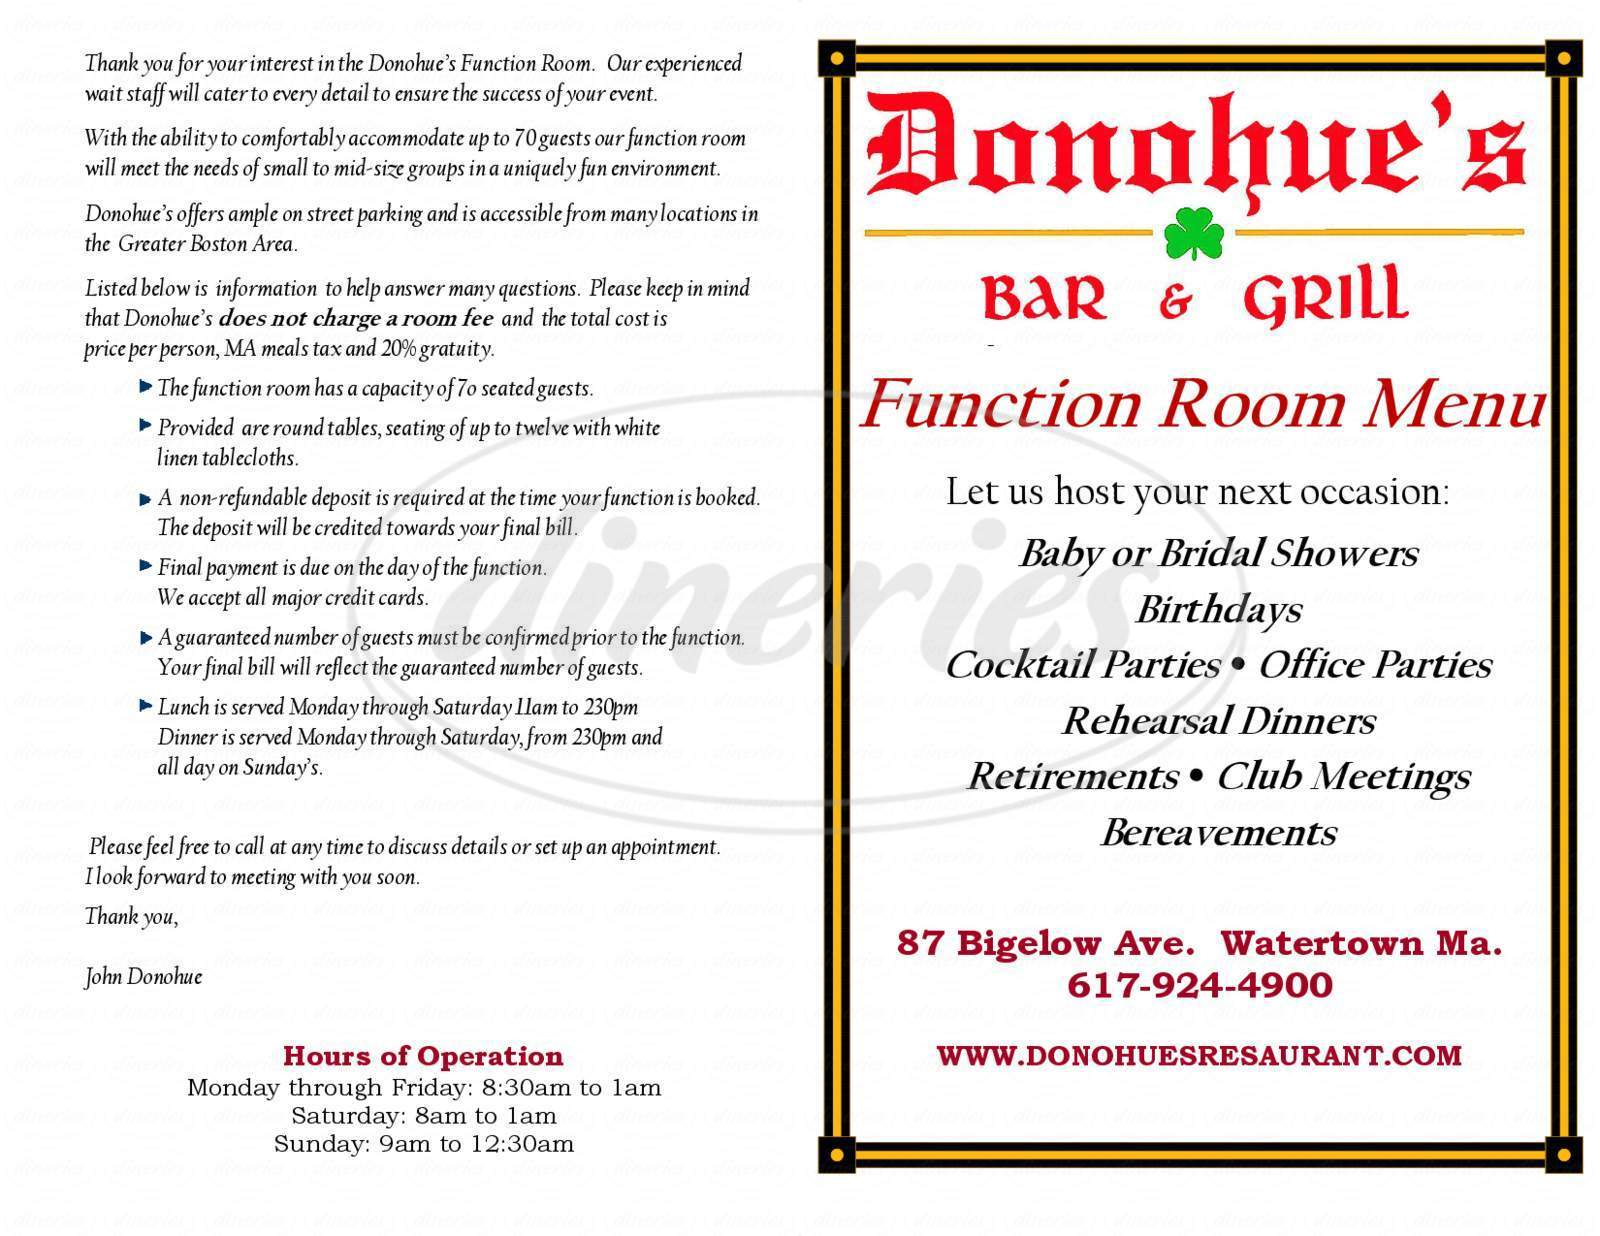 menu for Donohue's Bar and Grill